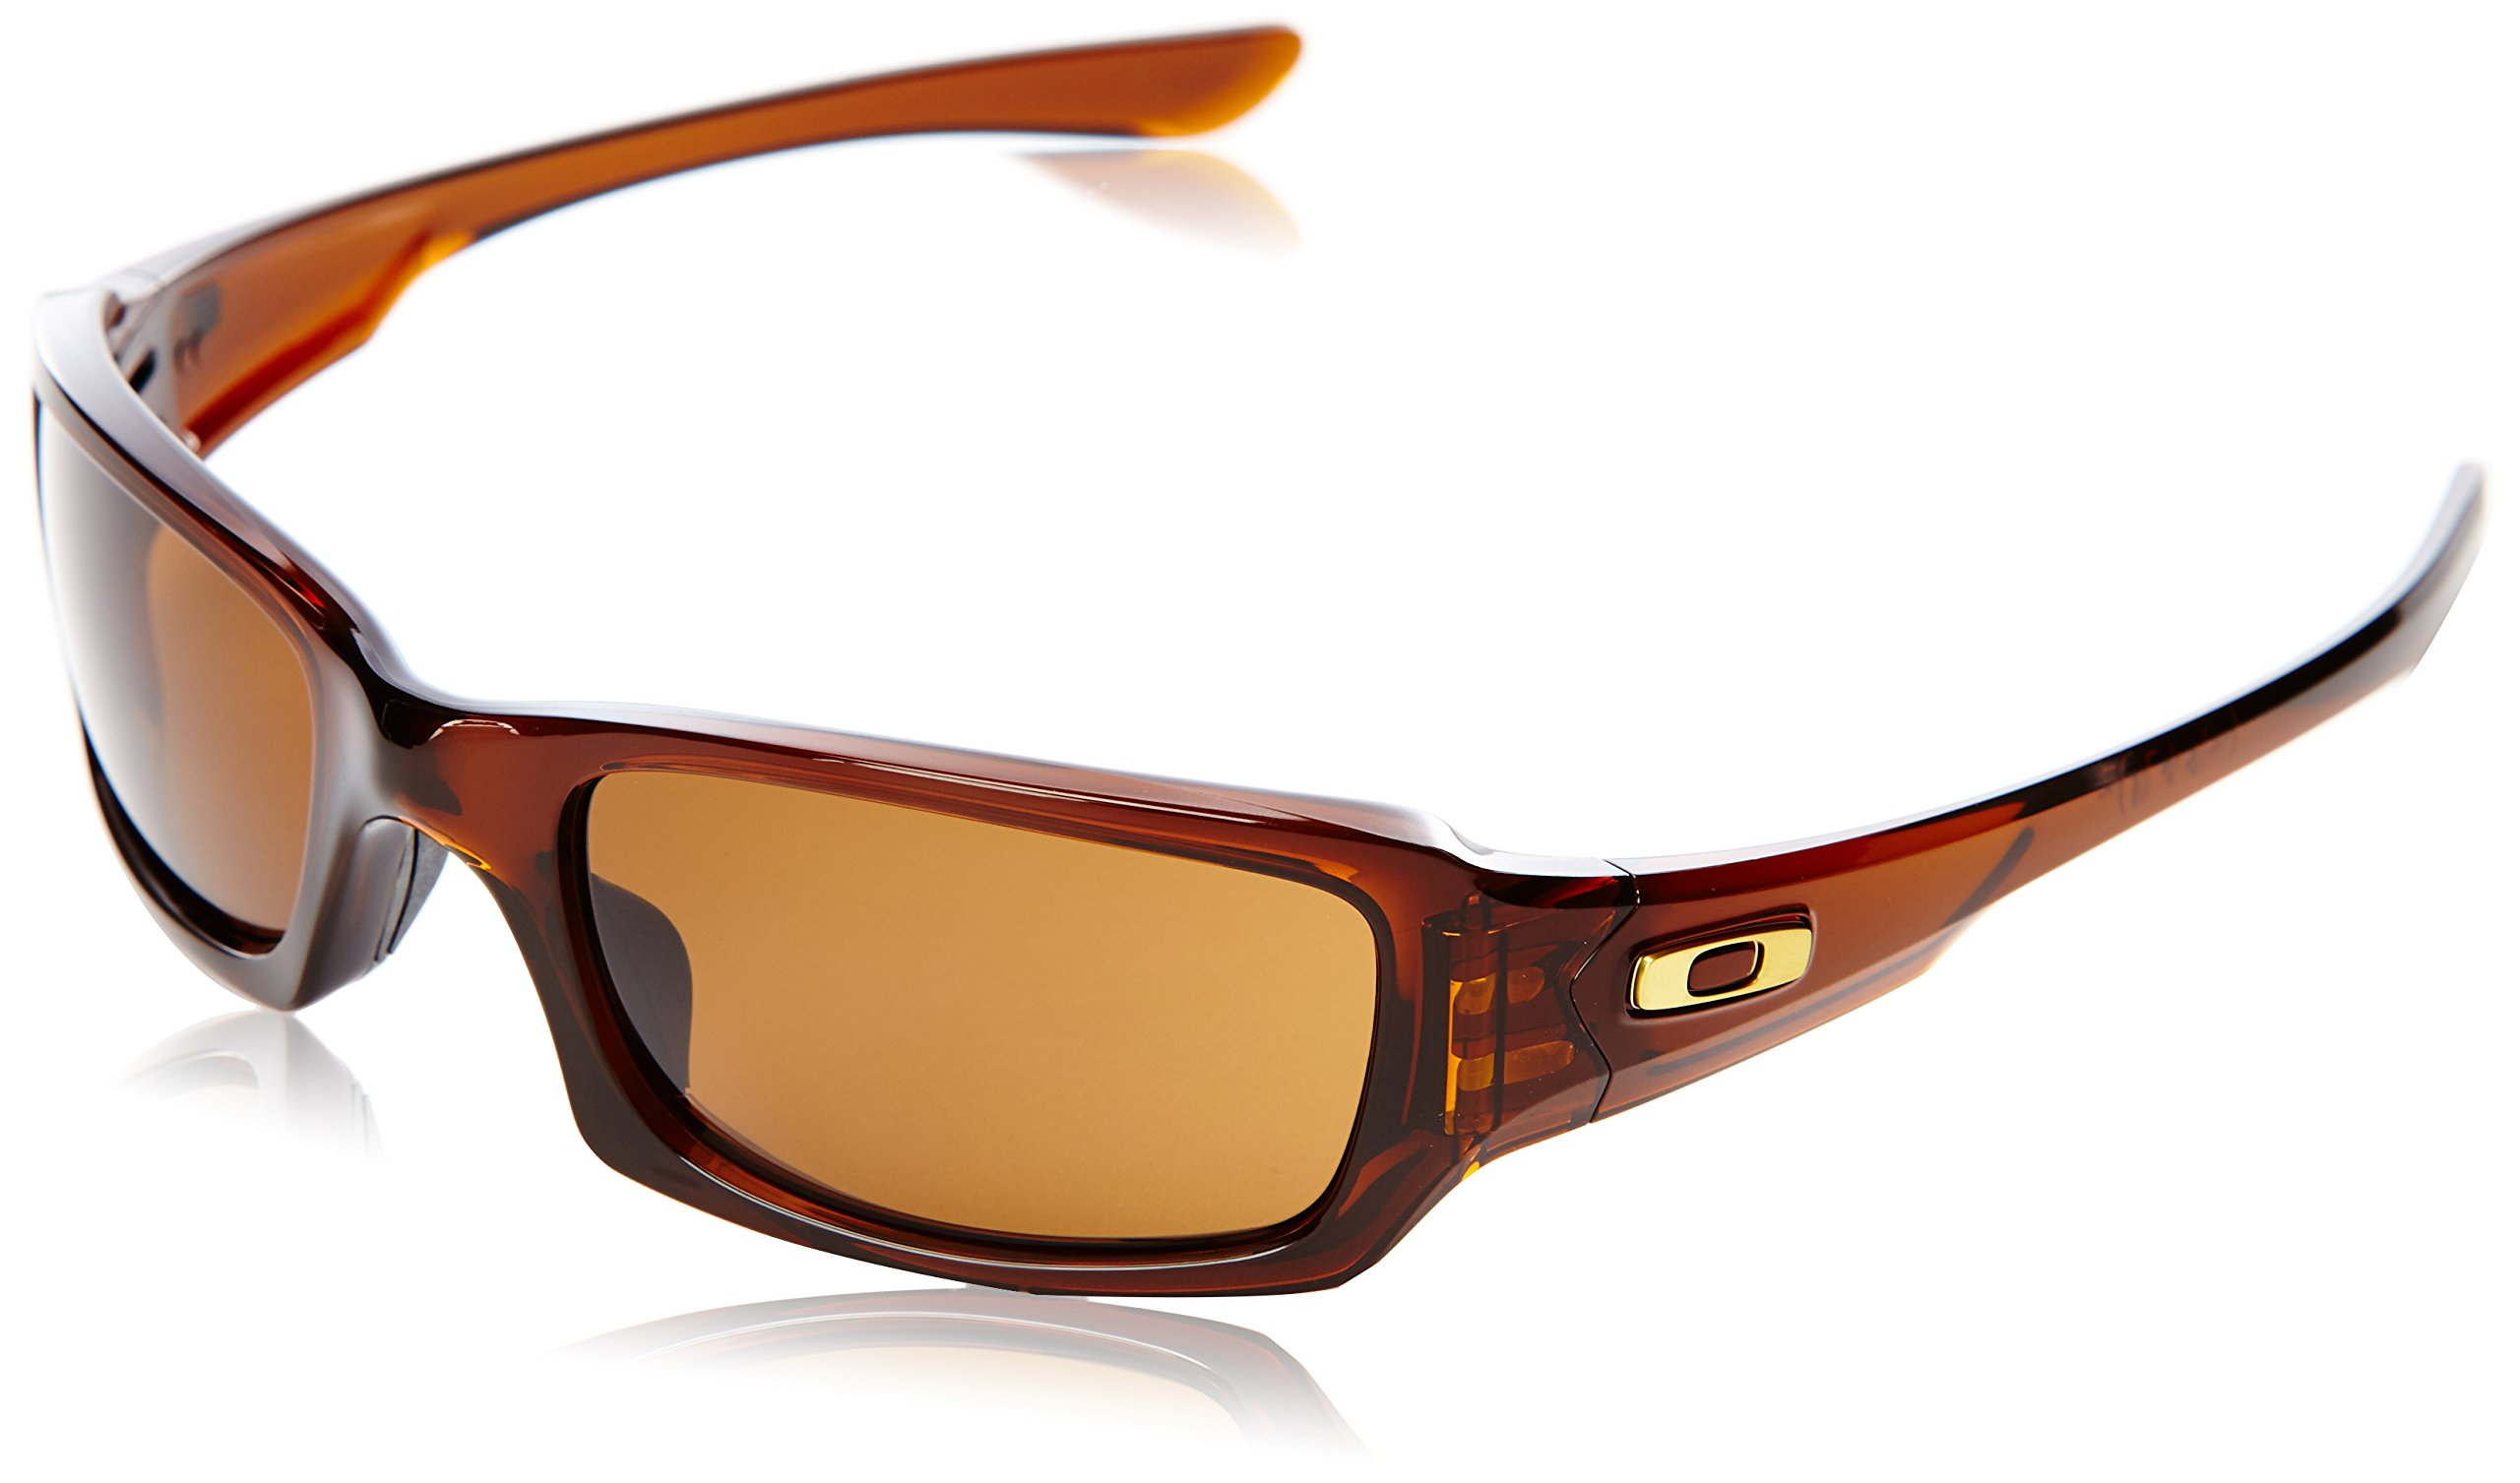 Oakley Men's Fives Squared OO9238-07 Rectangular Sunglasses, Polished Root Beer, 54 mm